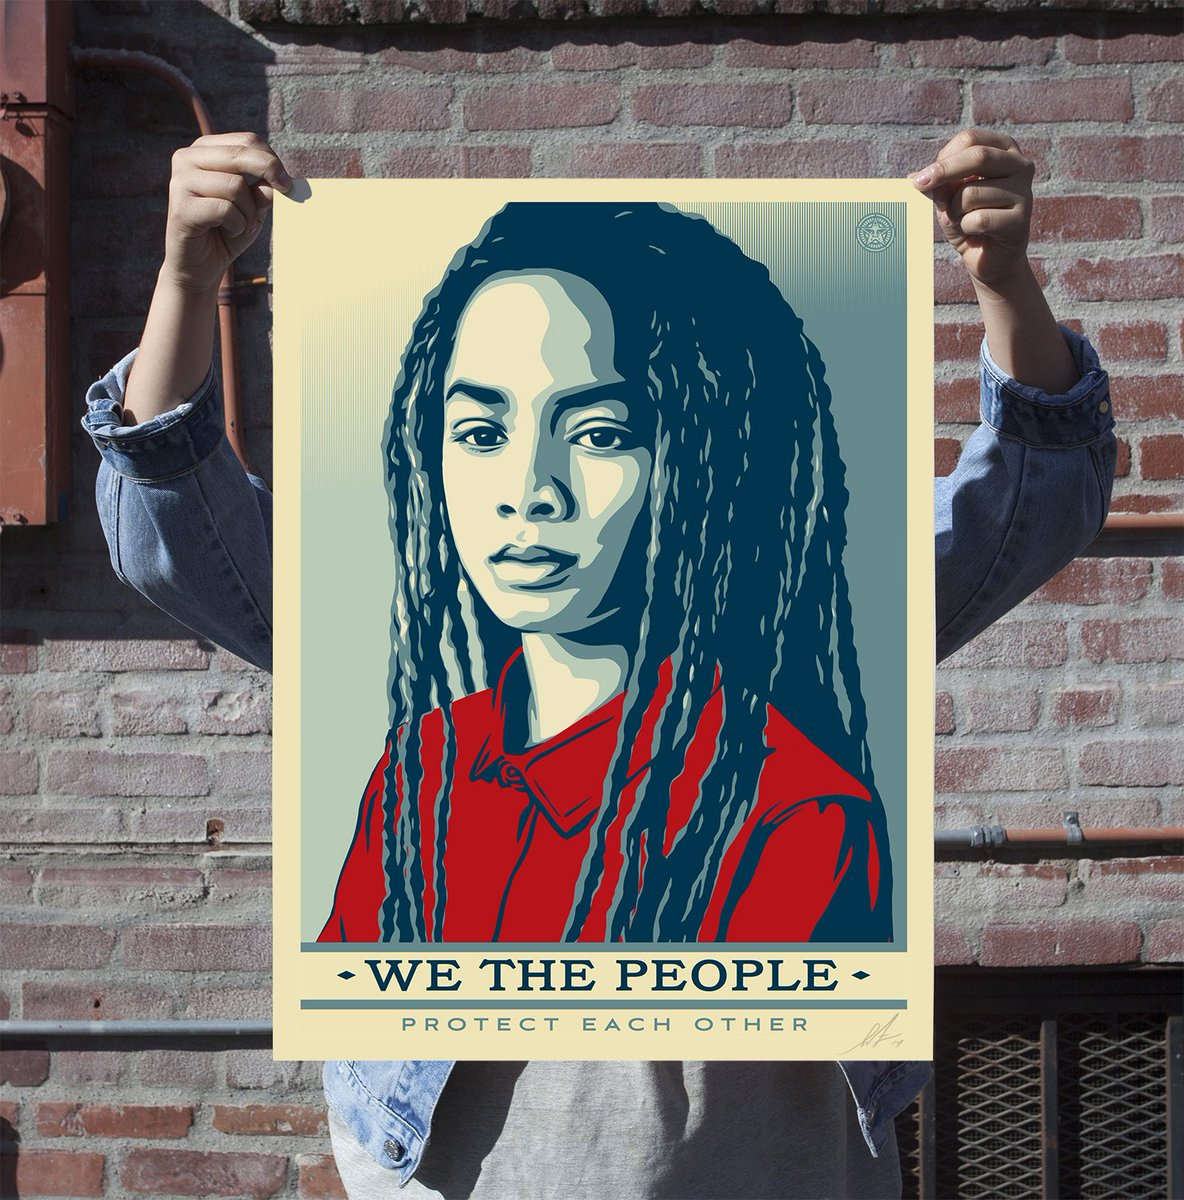 Tomorrow @ 10AM (PST), all 3 of my #WeThePeople 18 x 24&quot; prints will be available to purchase here:  http:// kck.st/2idgF0j  &nbsp;  . Don&#39;t miss it!<br>http://pic.twitter.com/OiFqmQBPot